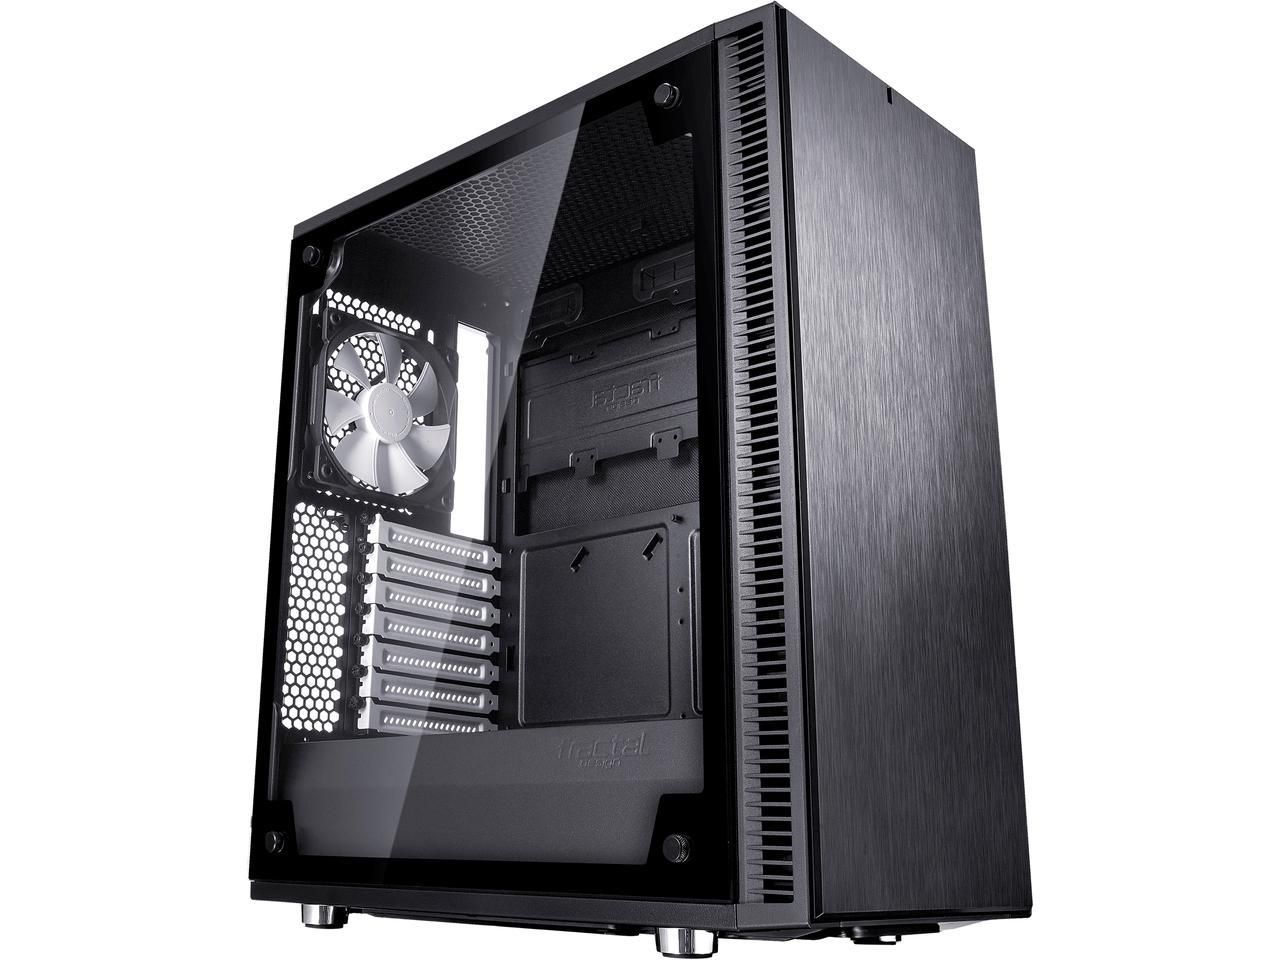 Fractal Design Define C TG Black Tempered Glass Window Silent Compact ATX Mid Tower Computer Case